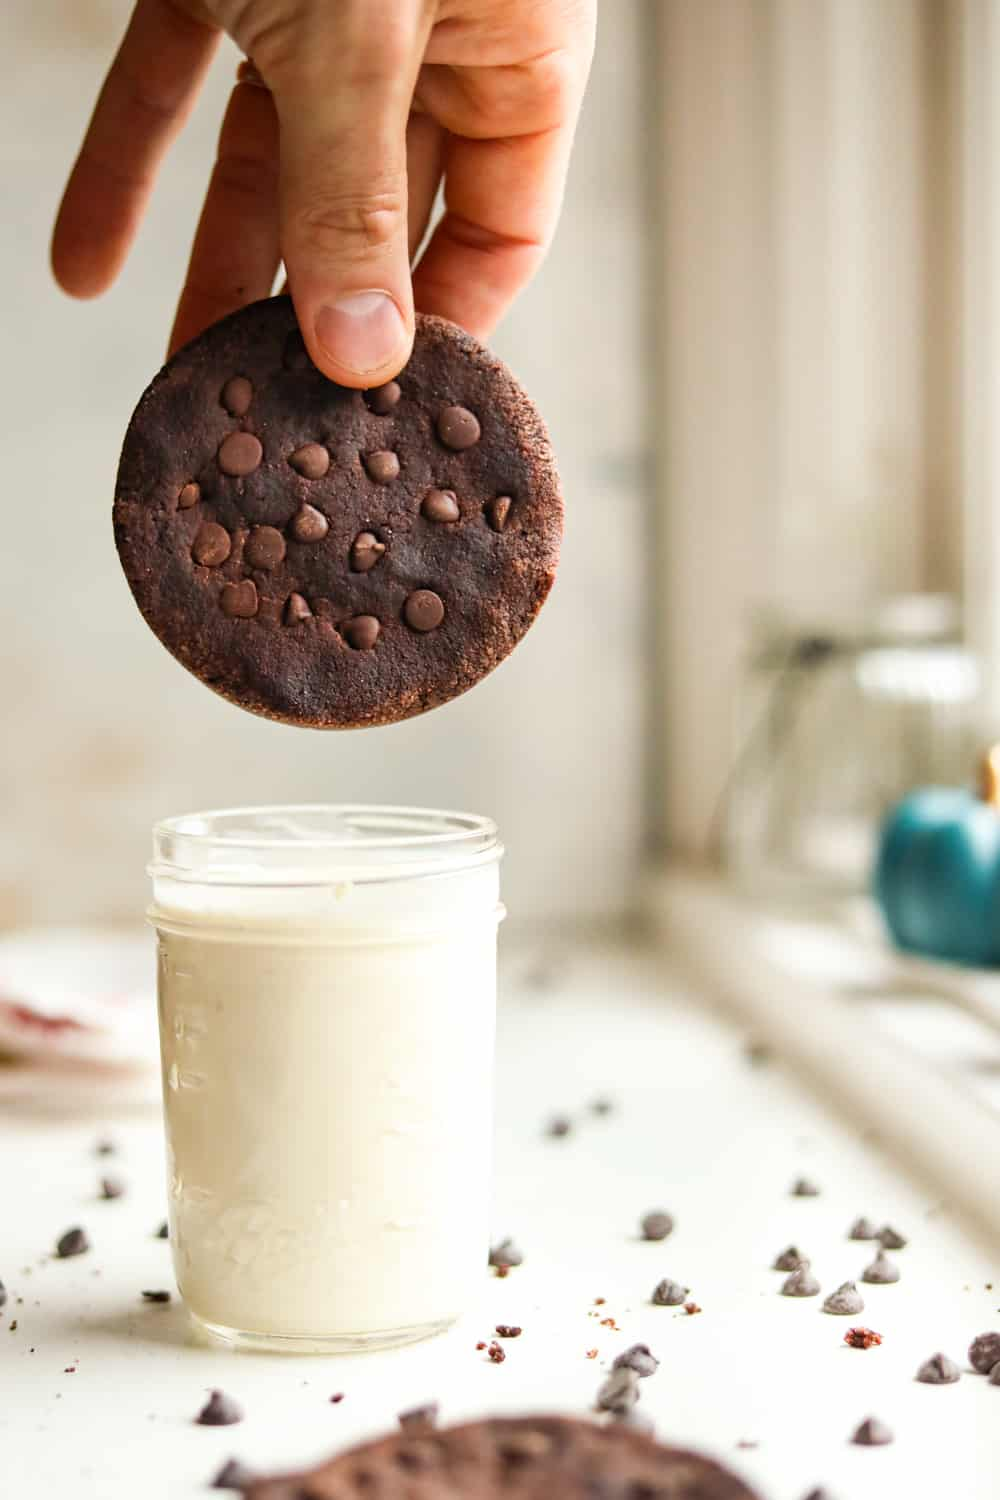 A double chocolate chip cookie about to be dunked in milk.